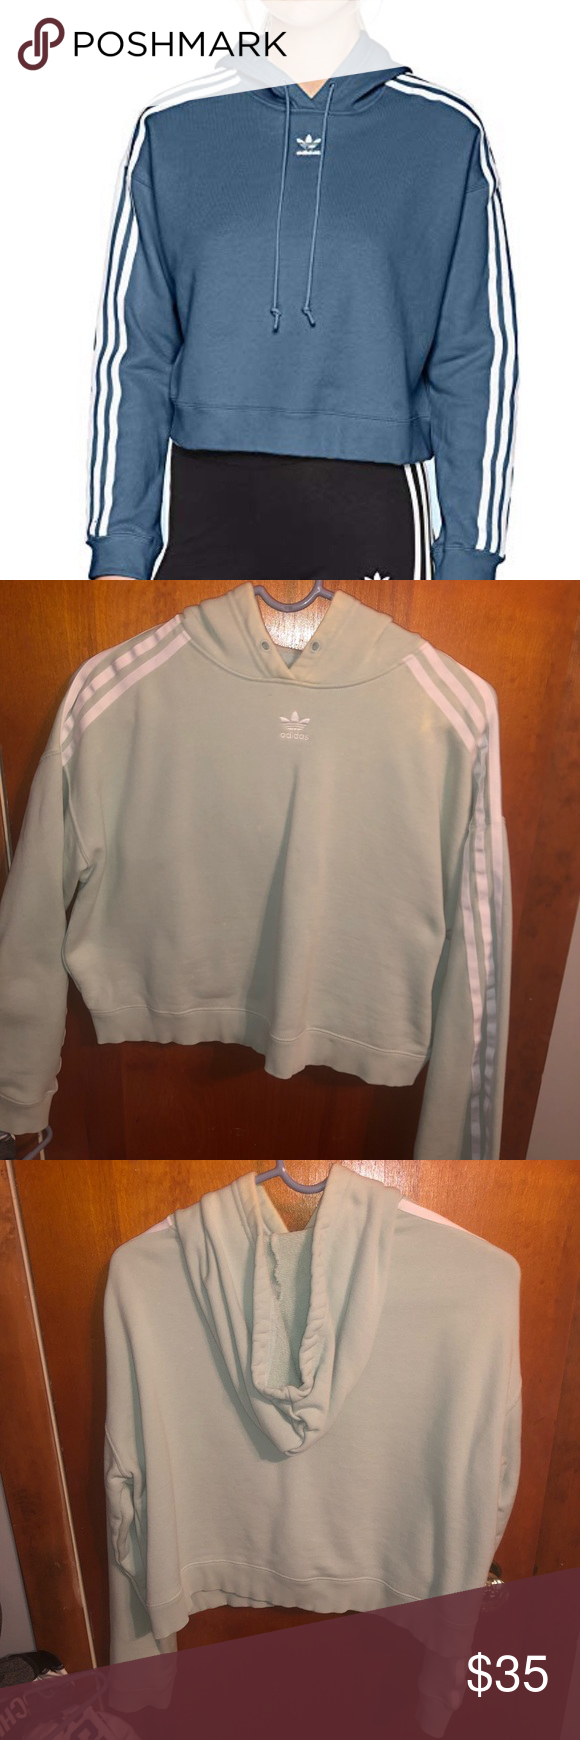 Adidas Cropped Women S Hoodie Cropped Light Blue Adidas Hoodie Size Medium Small Makeup Stain On The Fro Adidas Crop Long Sleeve Tshirt Men Hoodies Womens [ 1740 x 580 Pixel ]